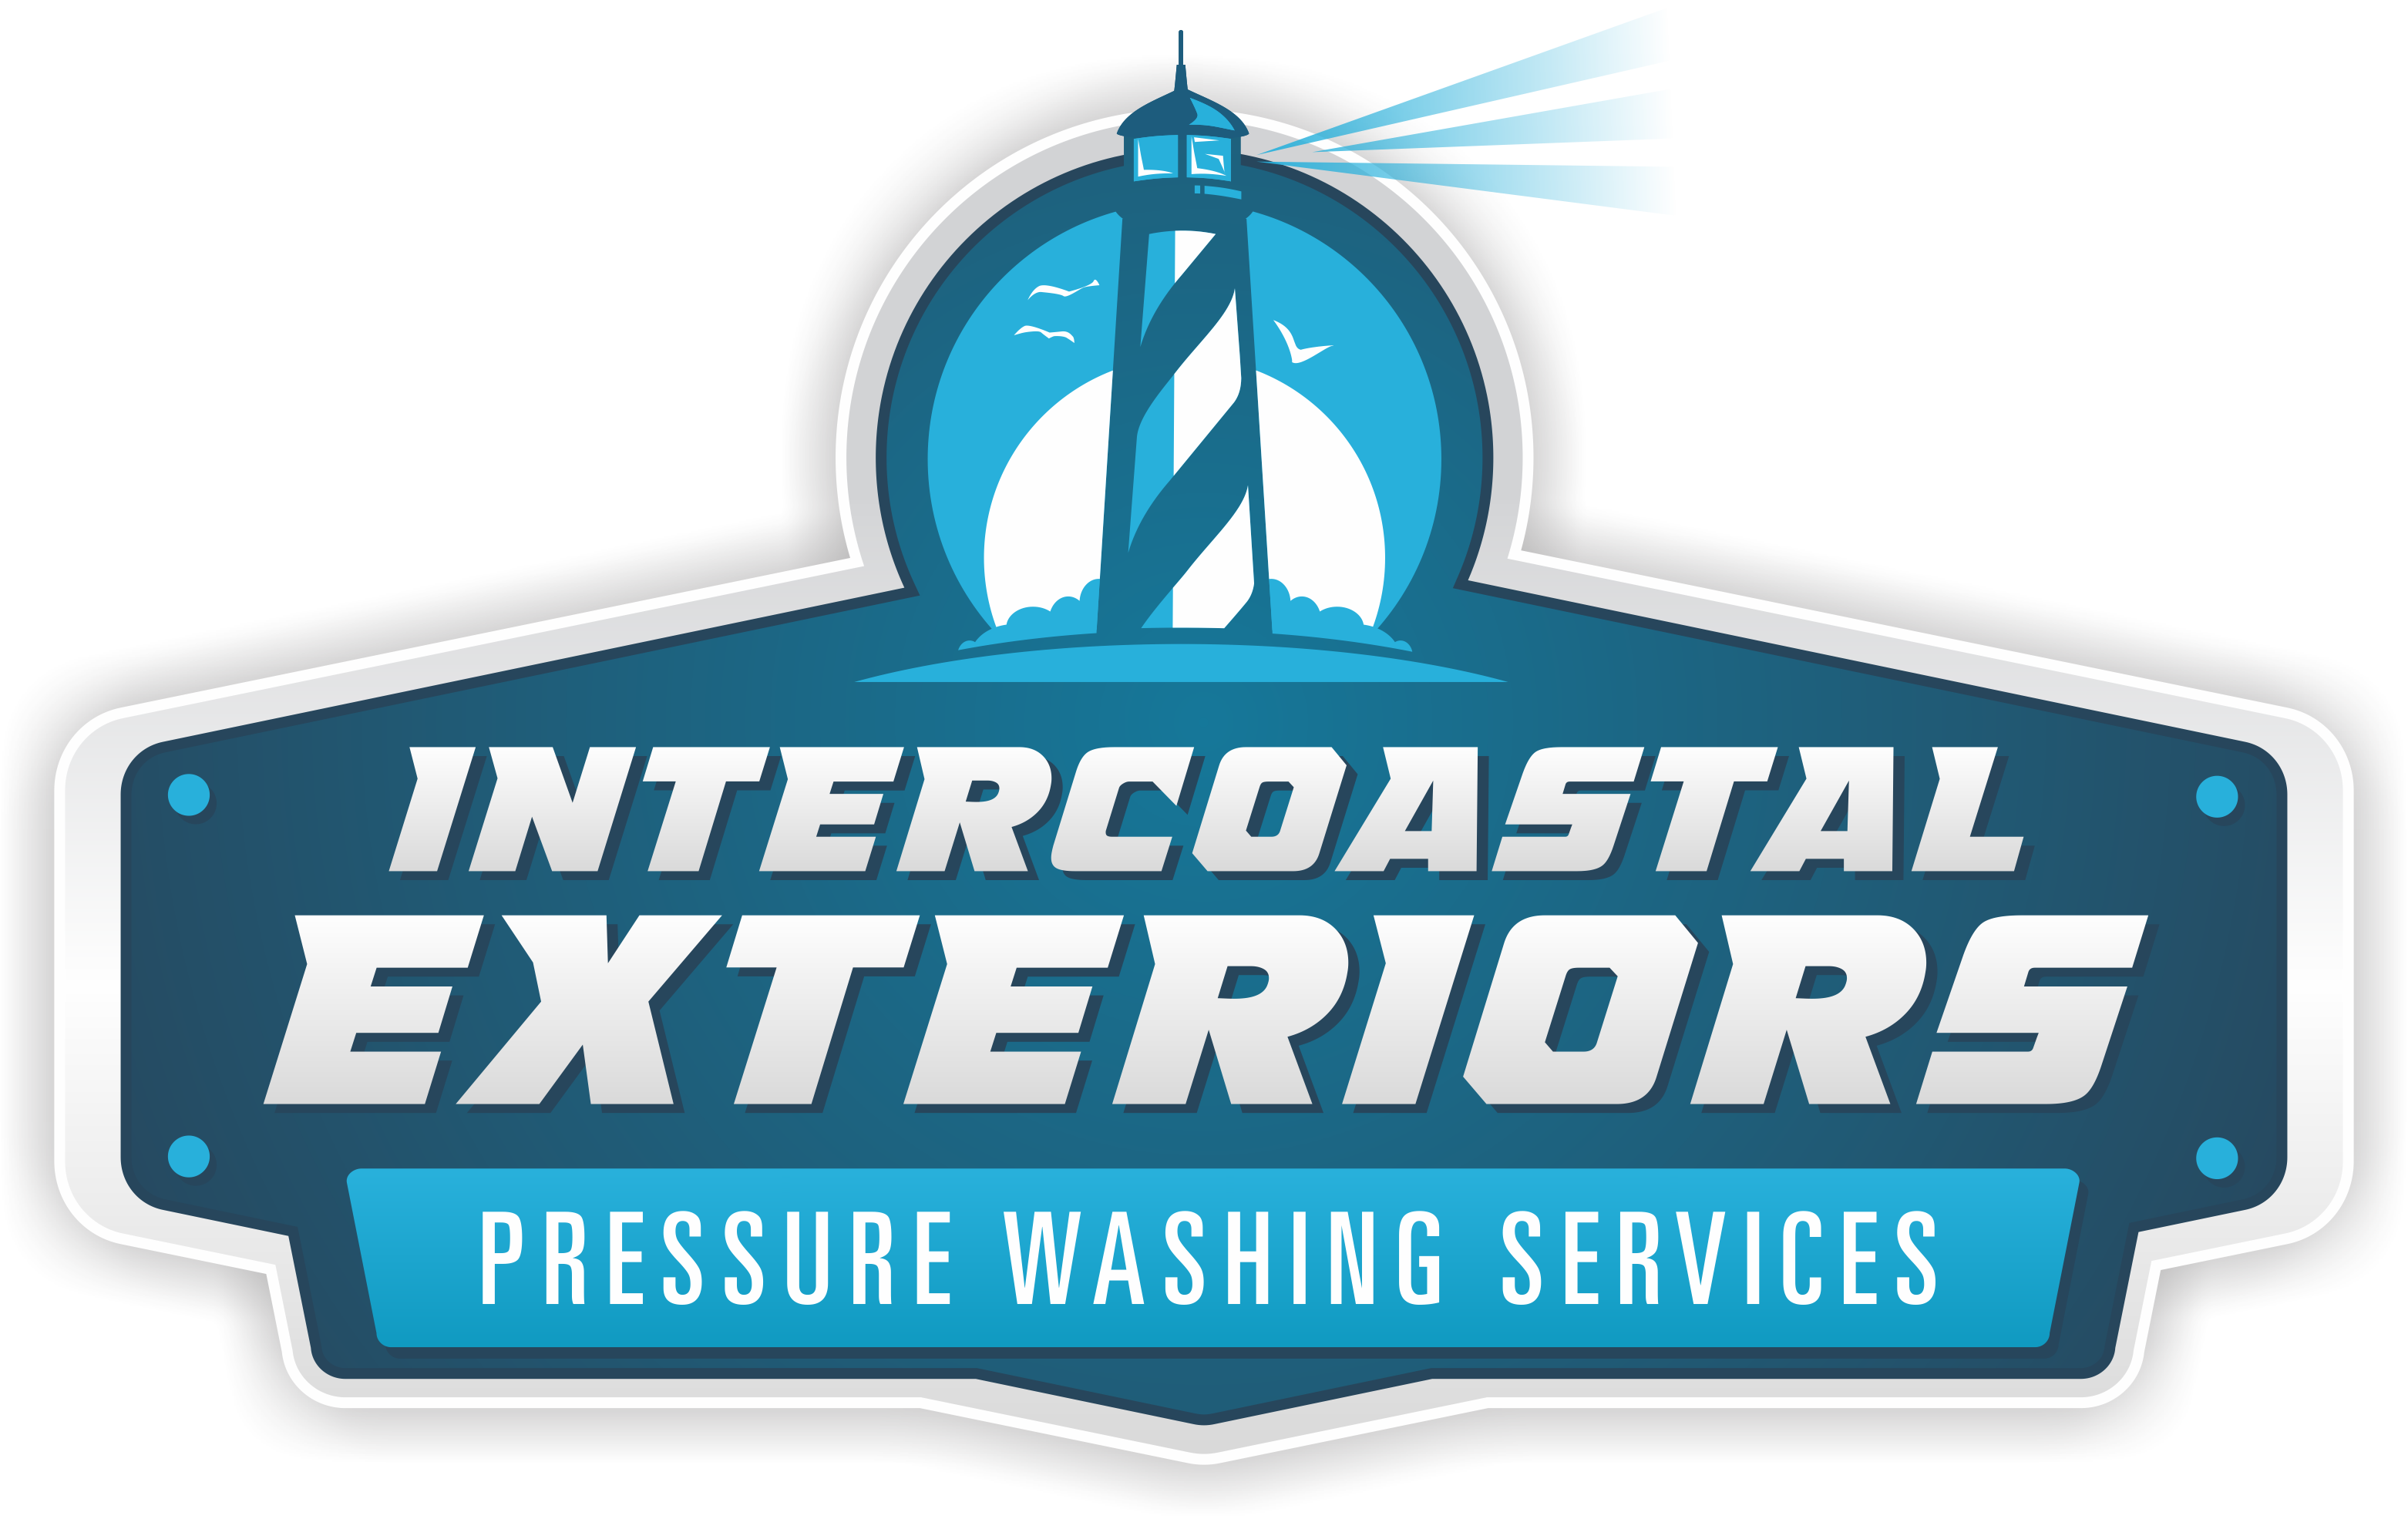 Intercoastal Exteriors